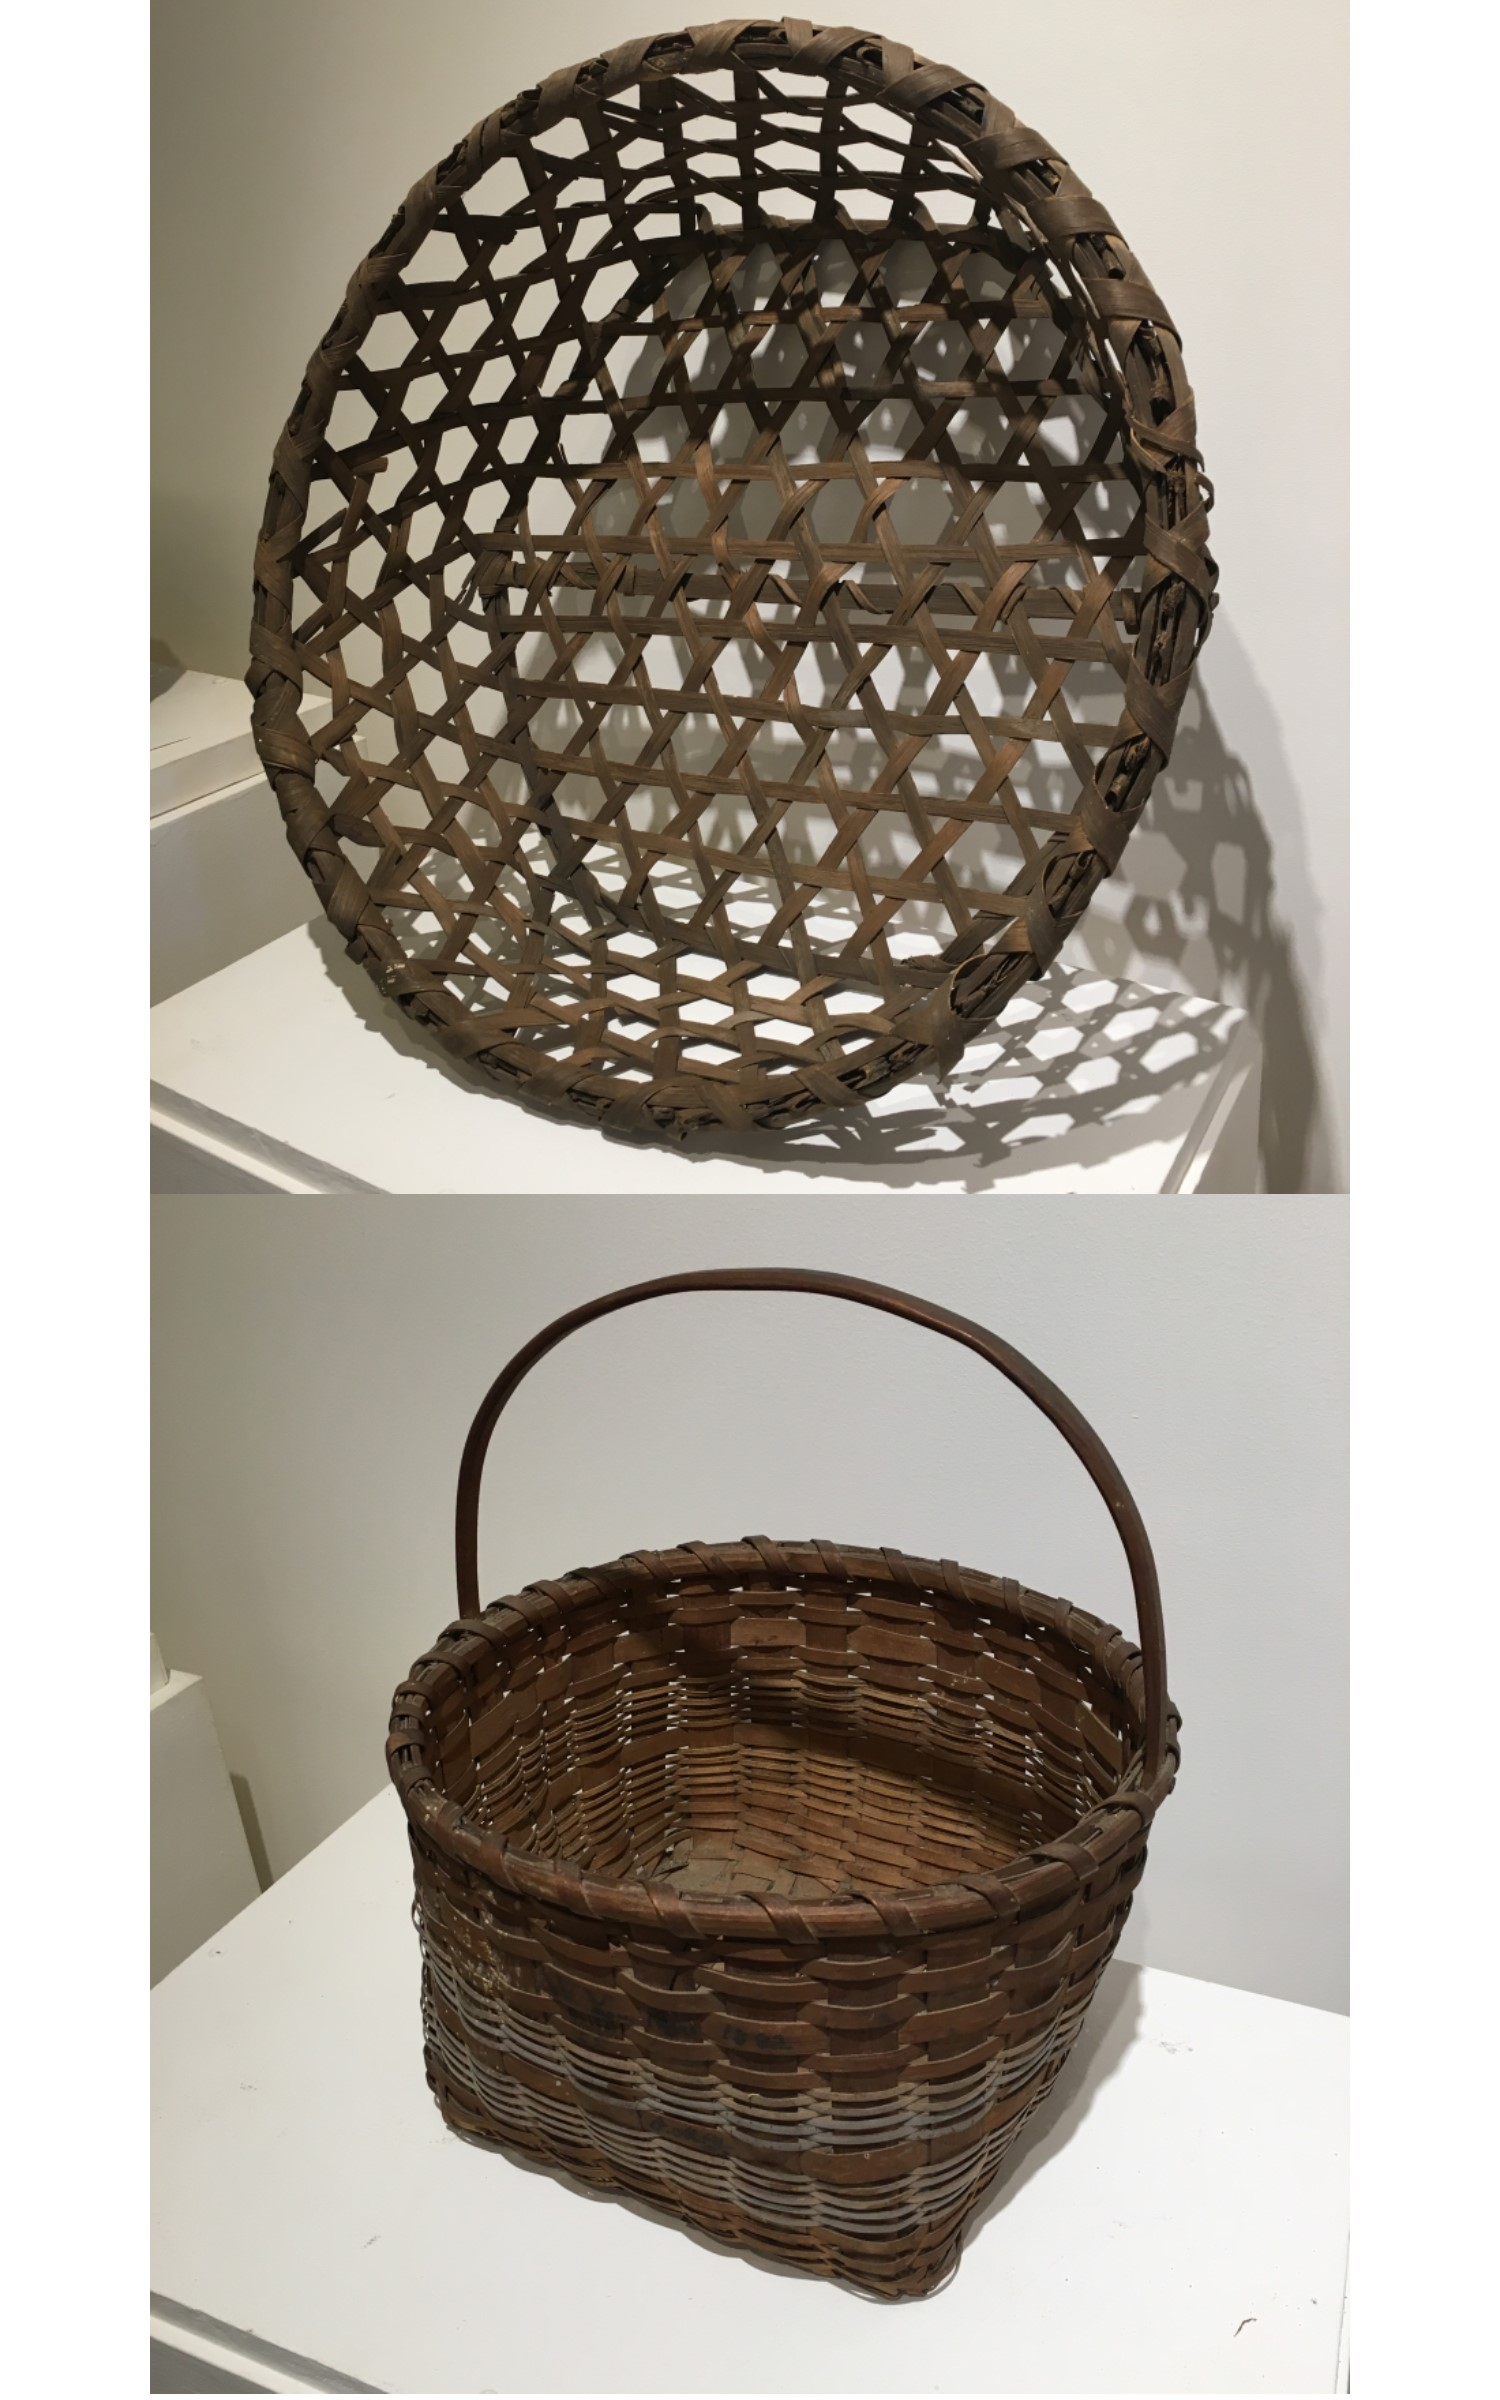 <h3>CHEESE BASKET</em></h3>